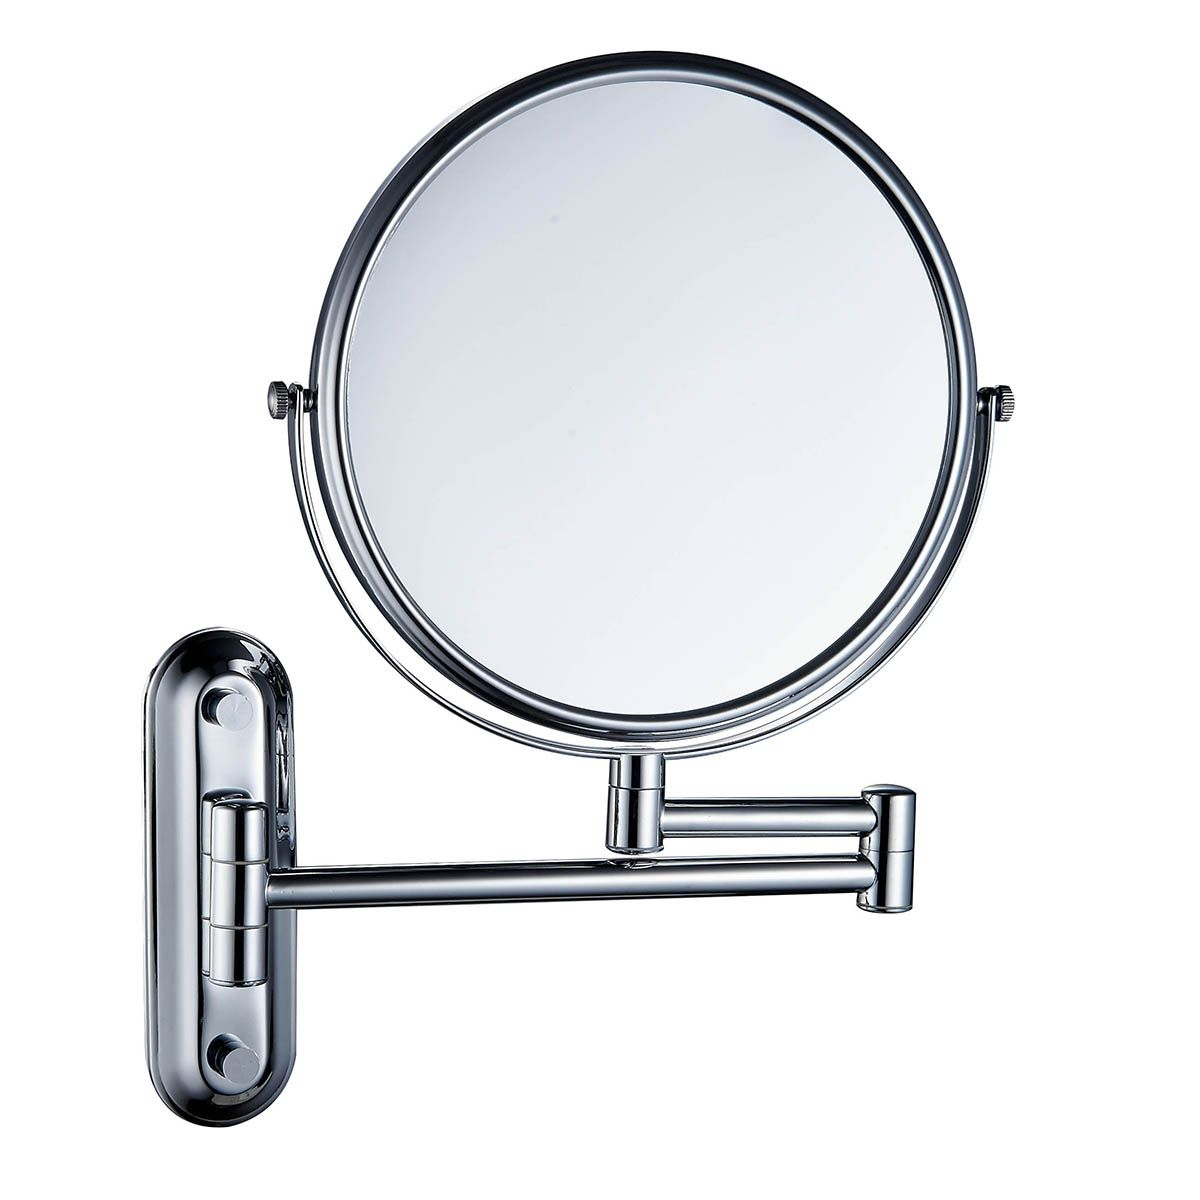 8 Inch Double Sided Swivel 12 Inch Extension Wall Mount Makeup Mirror 3016 Teverer Wall Mounted Makeup Mirror Mirror Wall Mount